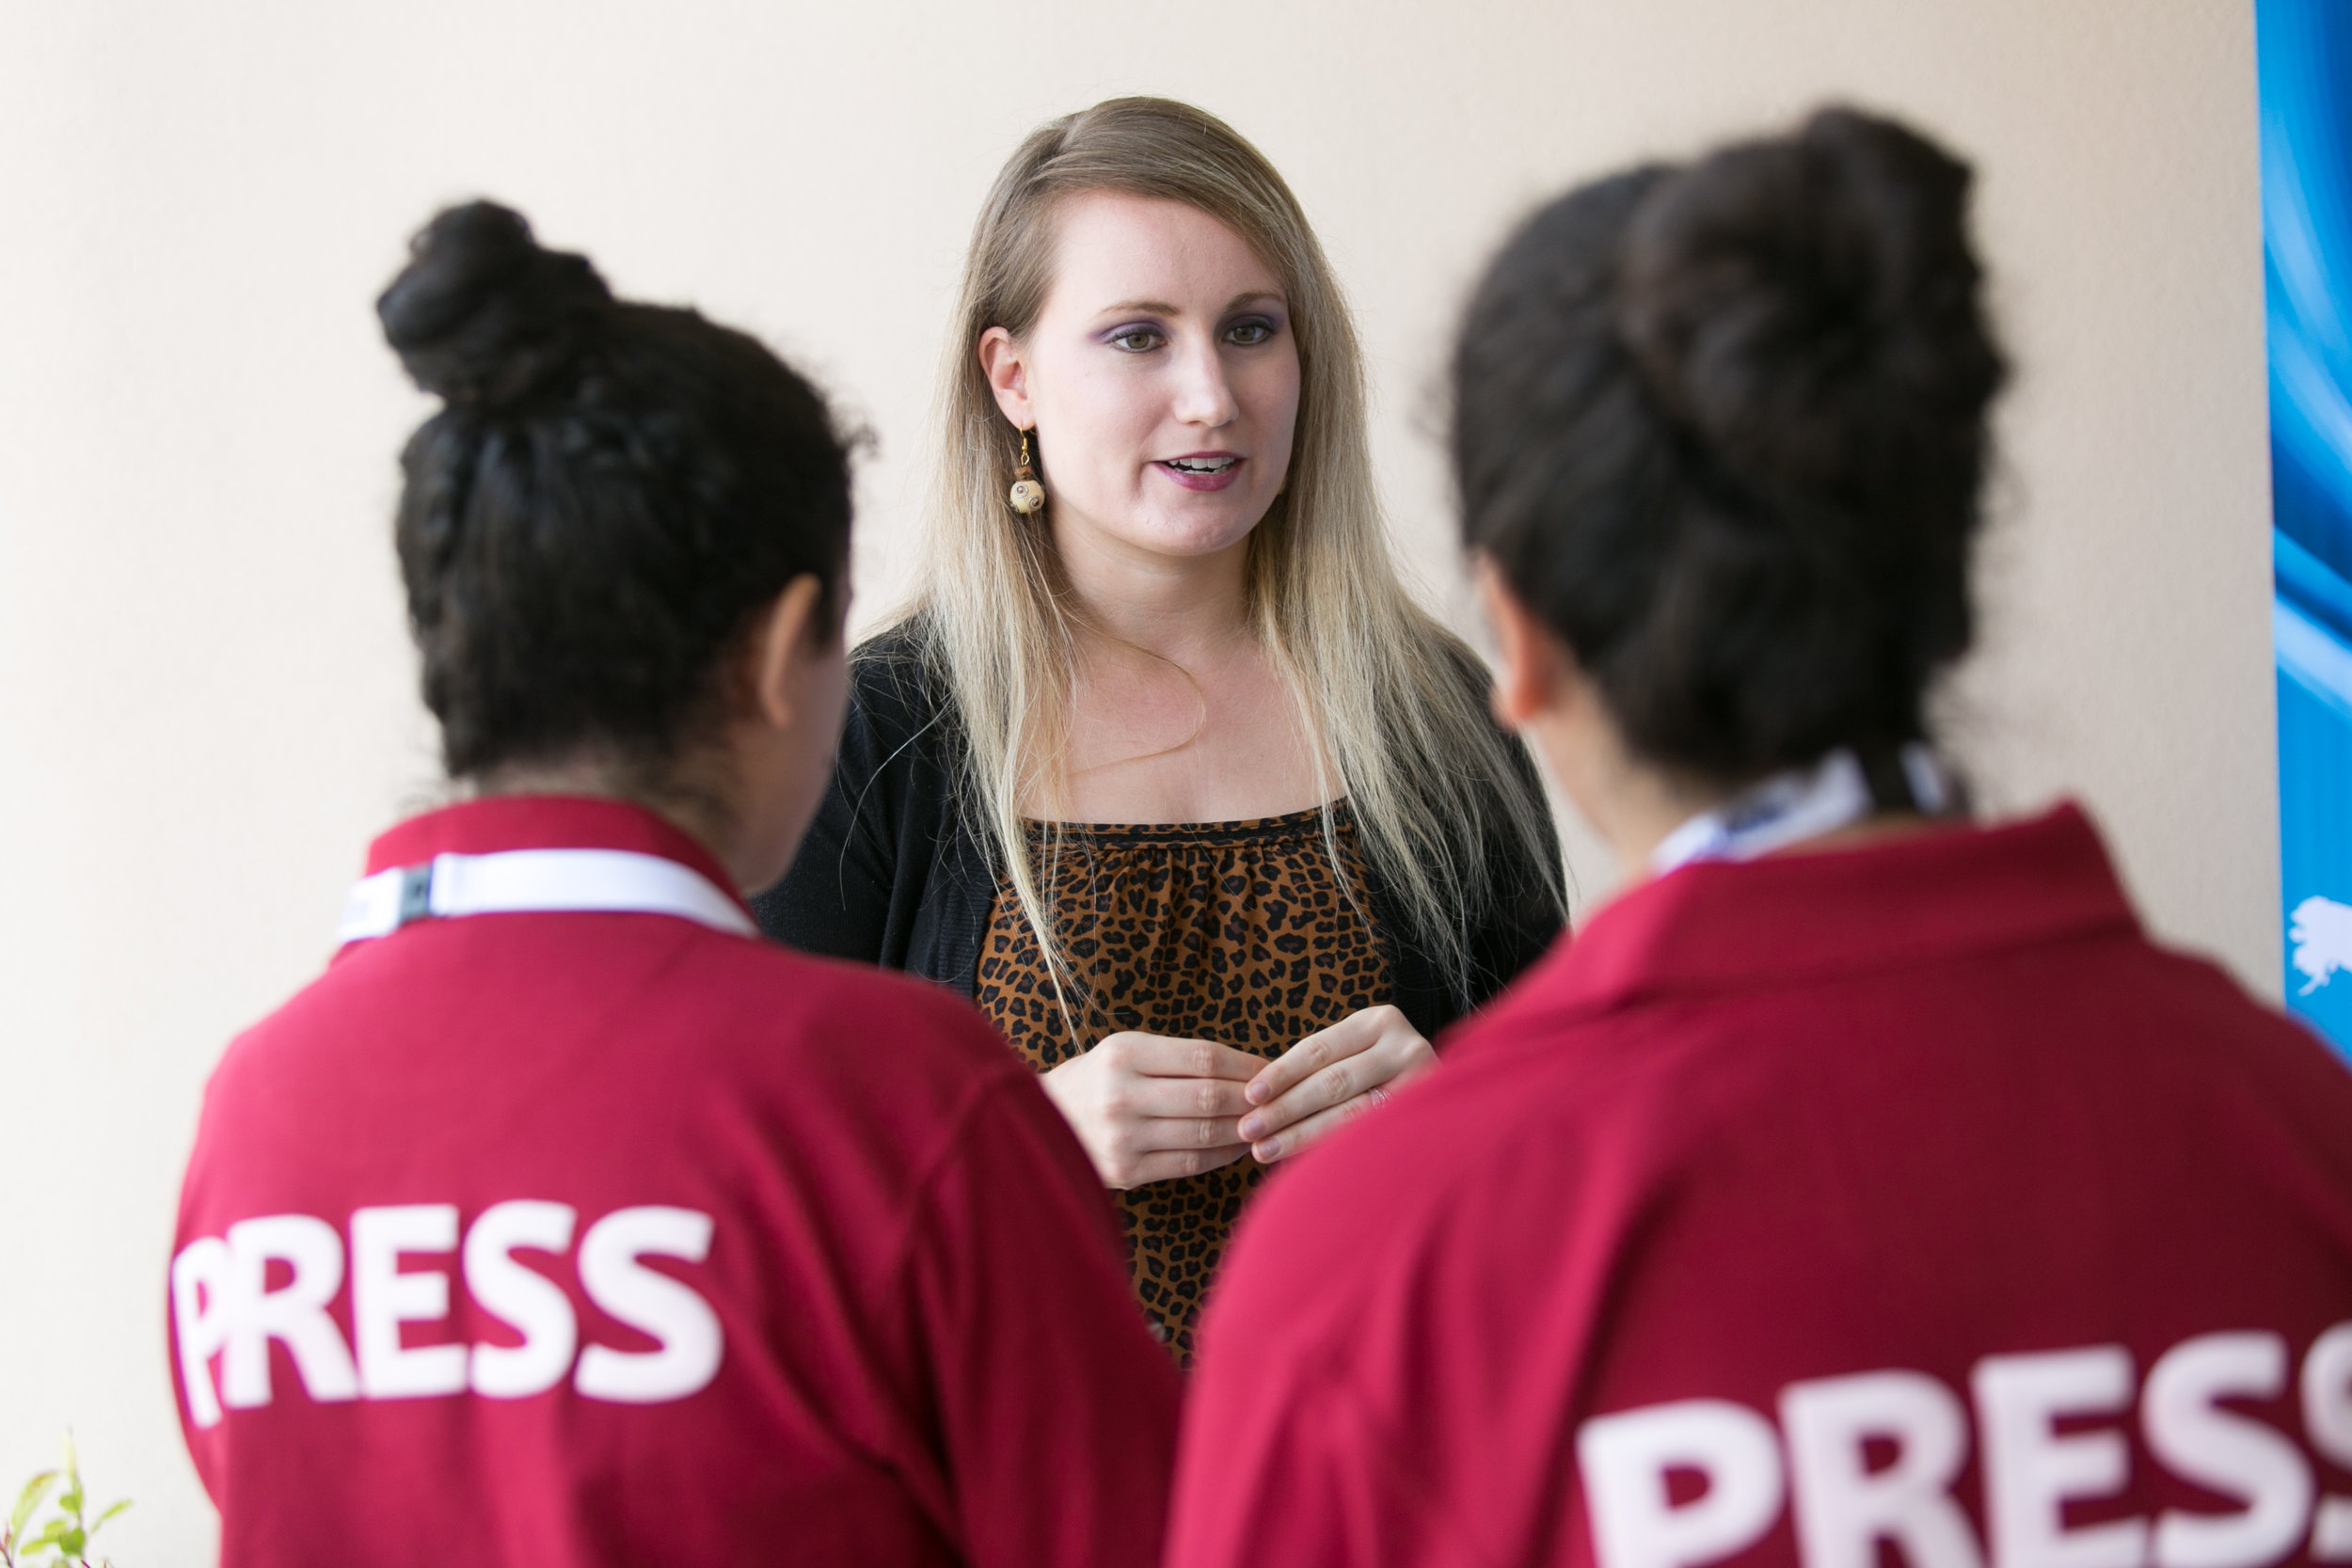 PHESMUN PRESS - The press team are an integral part at capturing the PHESMUN conference and the importance of the theme